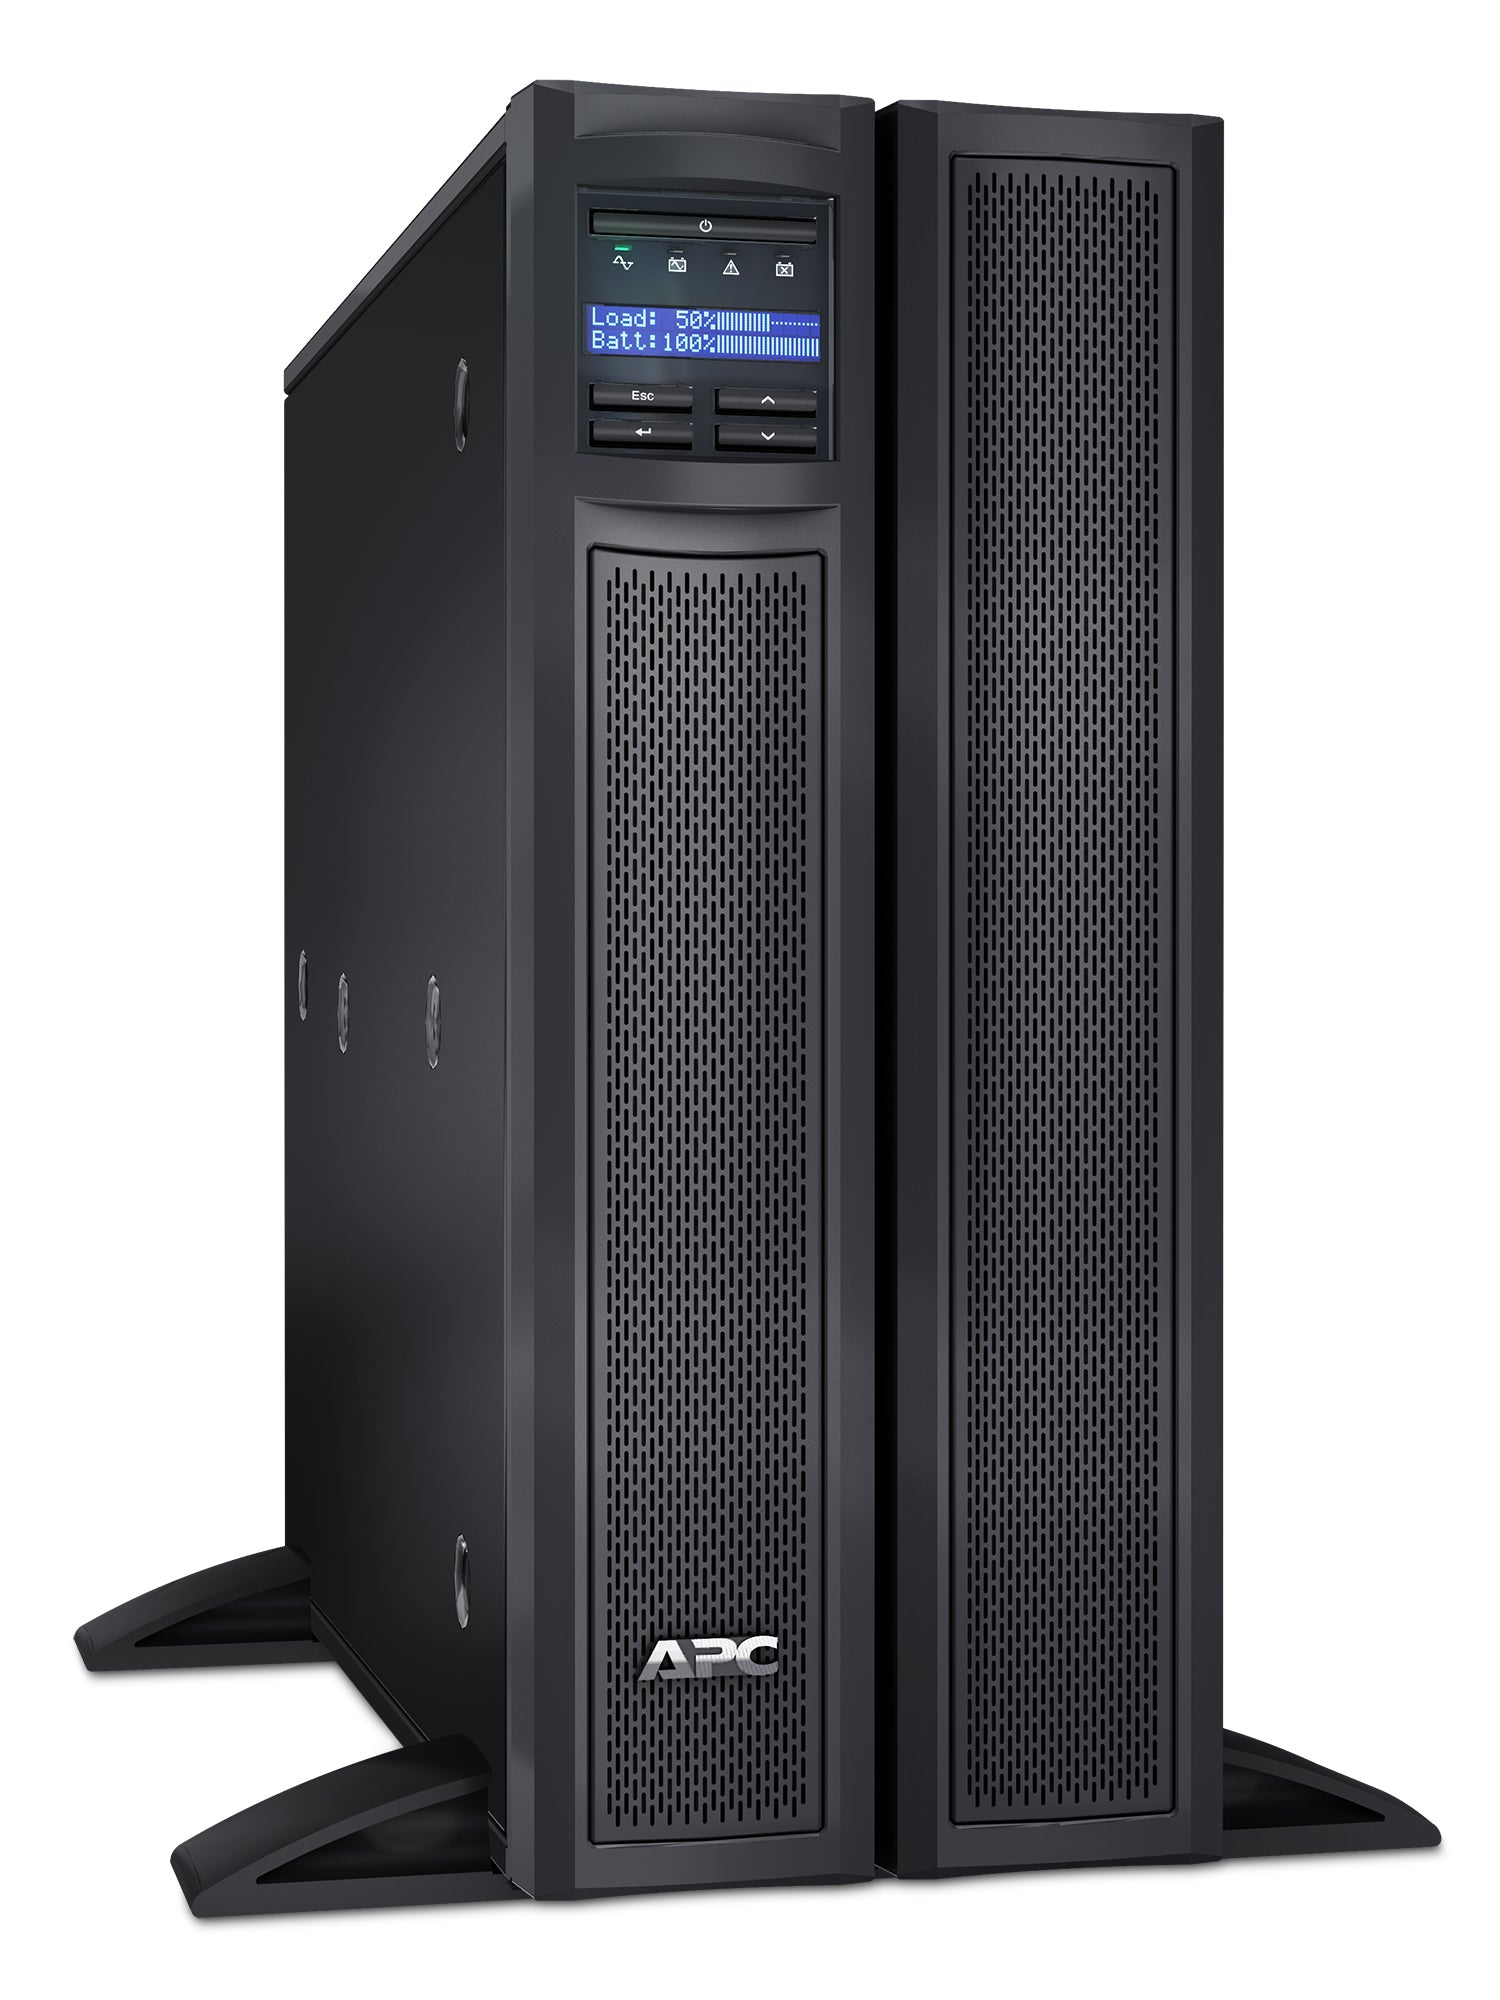 APC Smart-UPS uninterruptible power supply (UPS) Line-Interactive 3000 VA 2700 W 10 AC outlet(s)